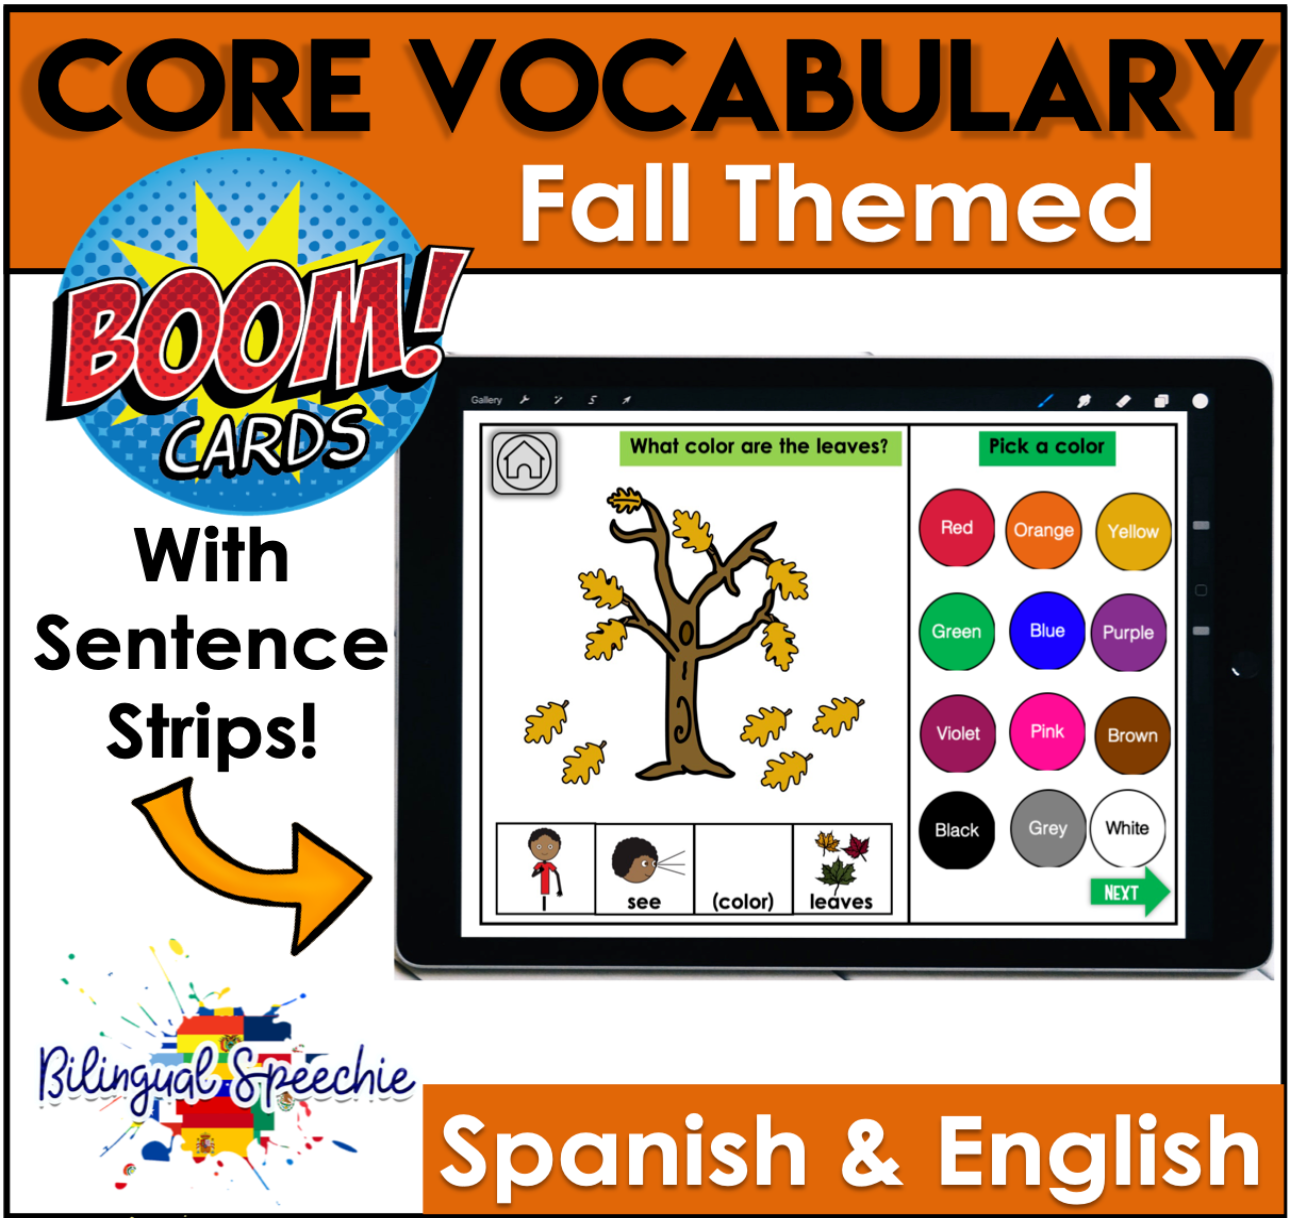 Fall Themed | Spanish & English Core Vocabulary | SEE